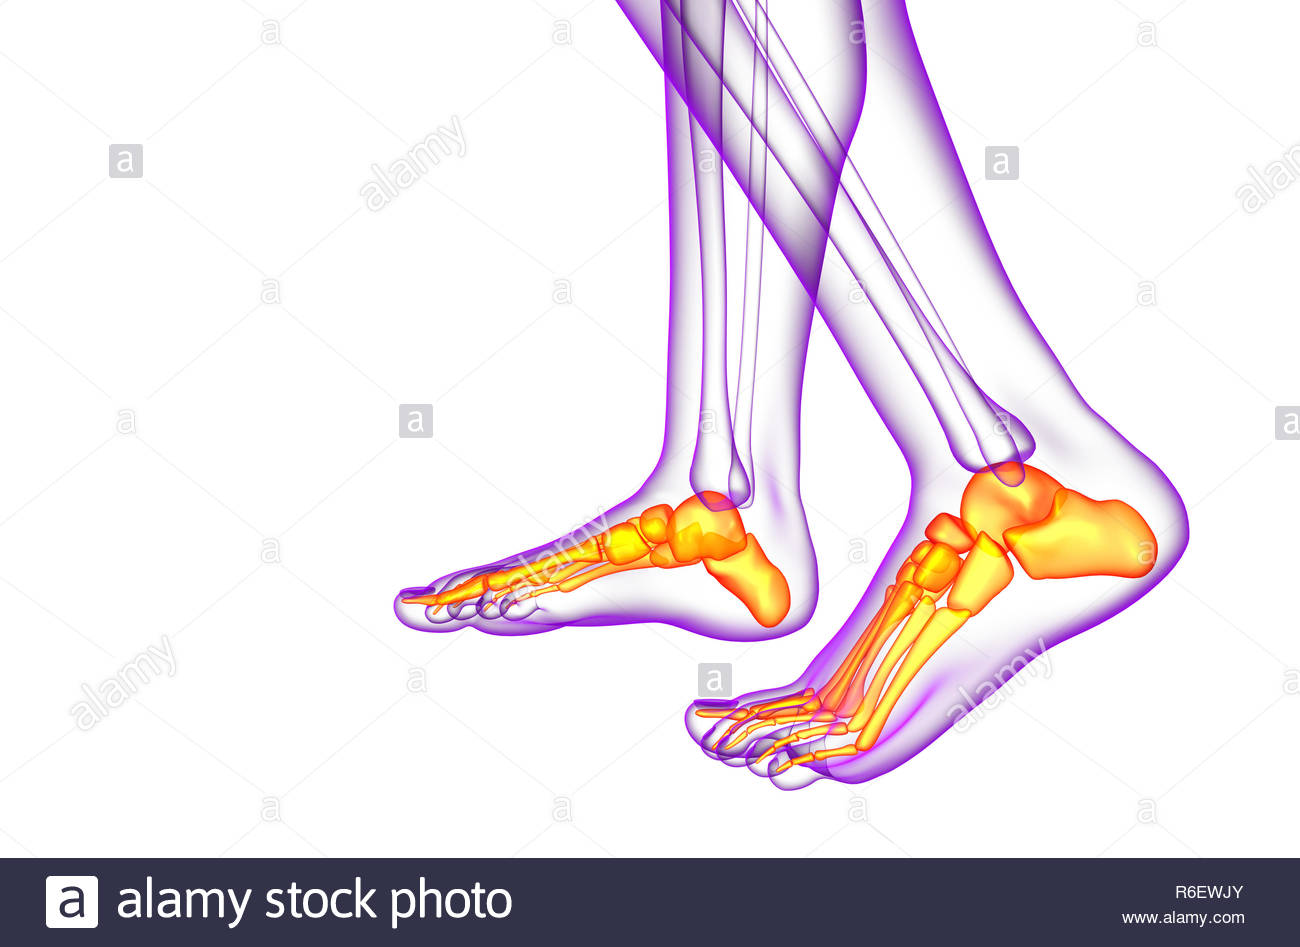 hight resolution of 3d render medical illustration of the foot bone side view